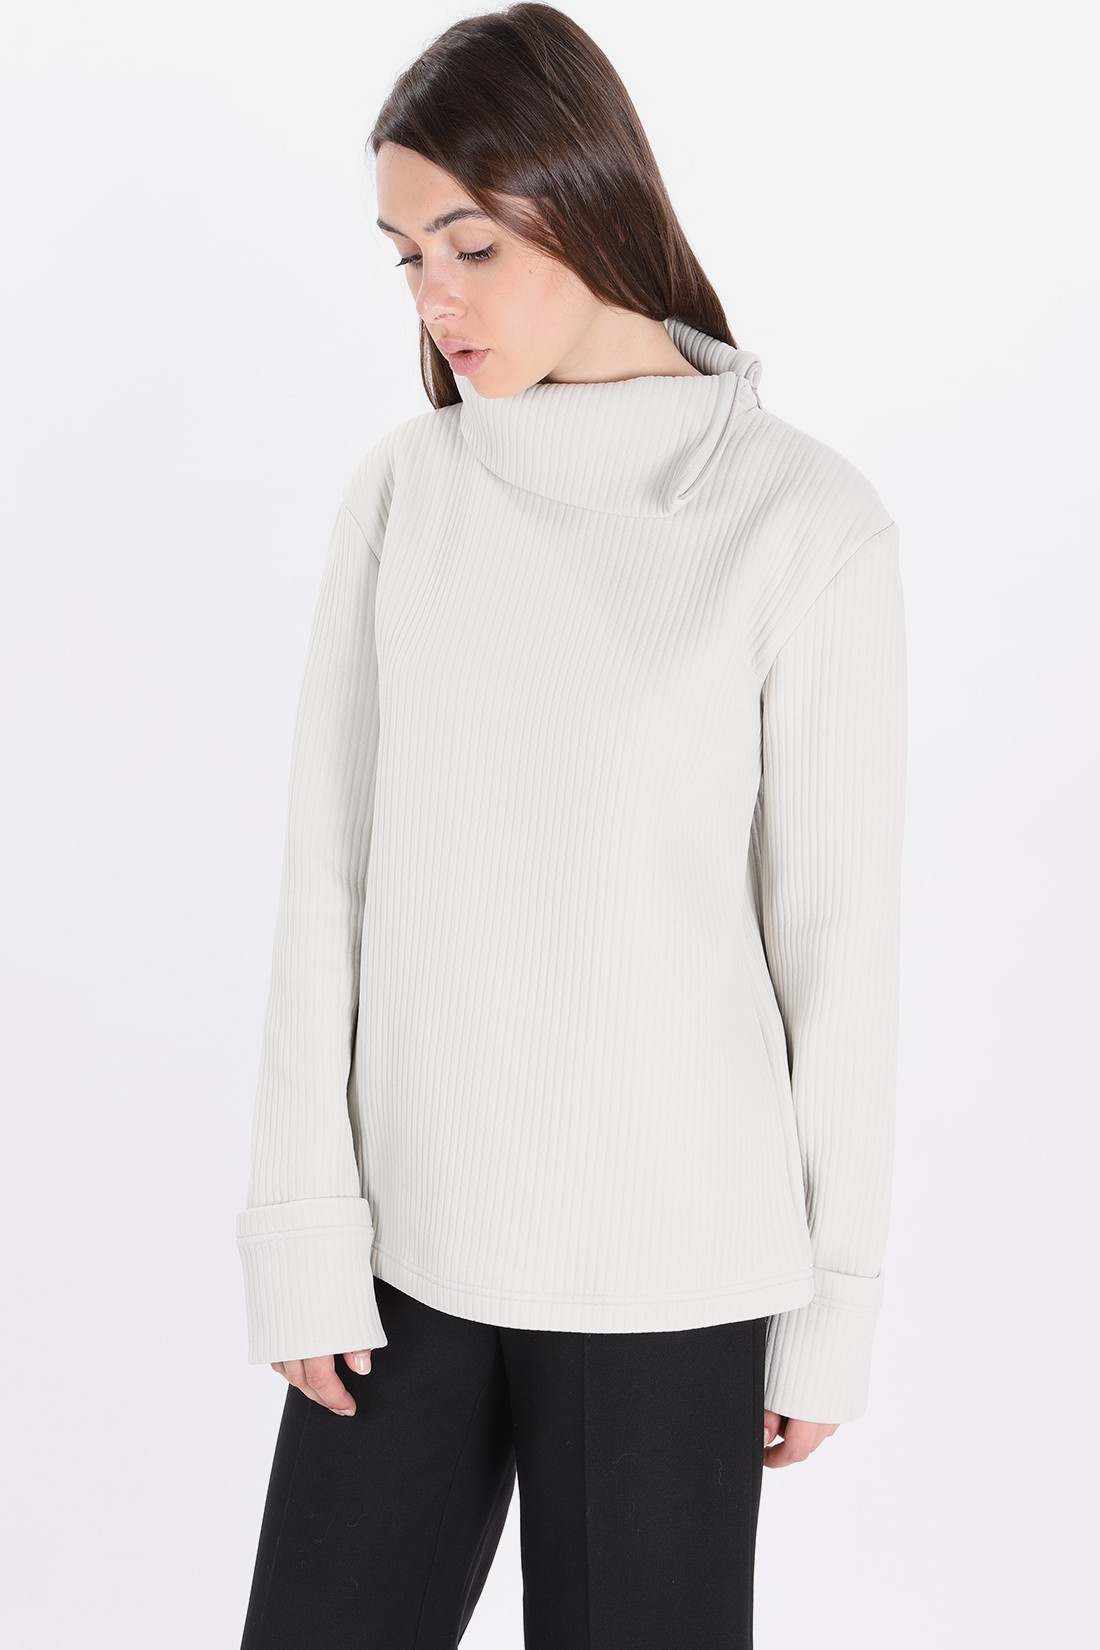 MM6 MAISON MARGIELA / S32nc0552 zipped roll-neck Off white